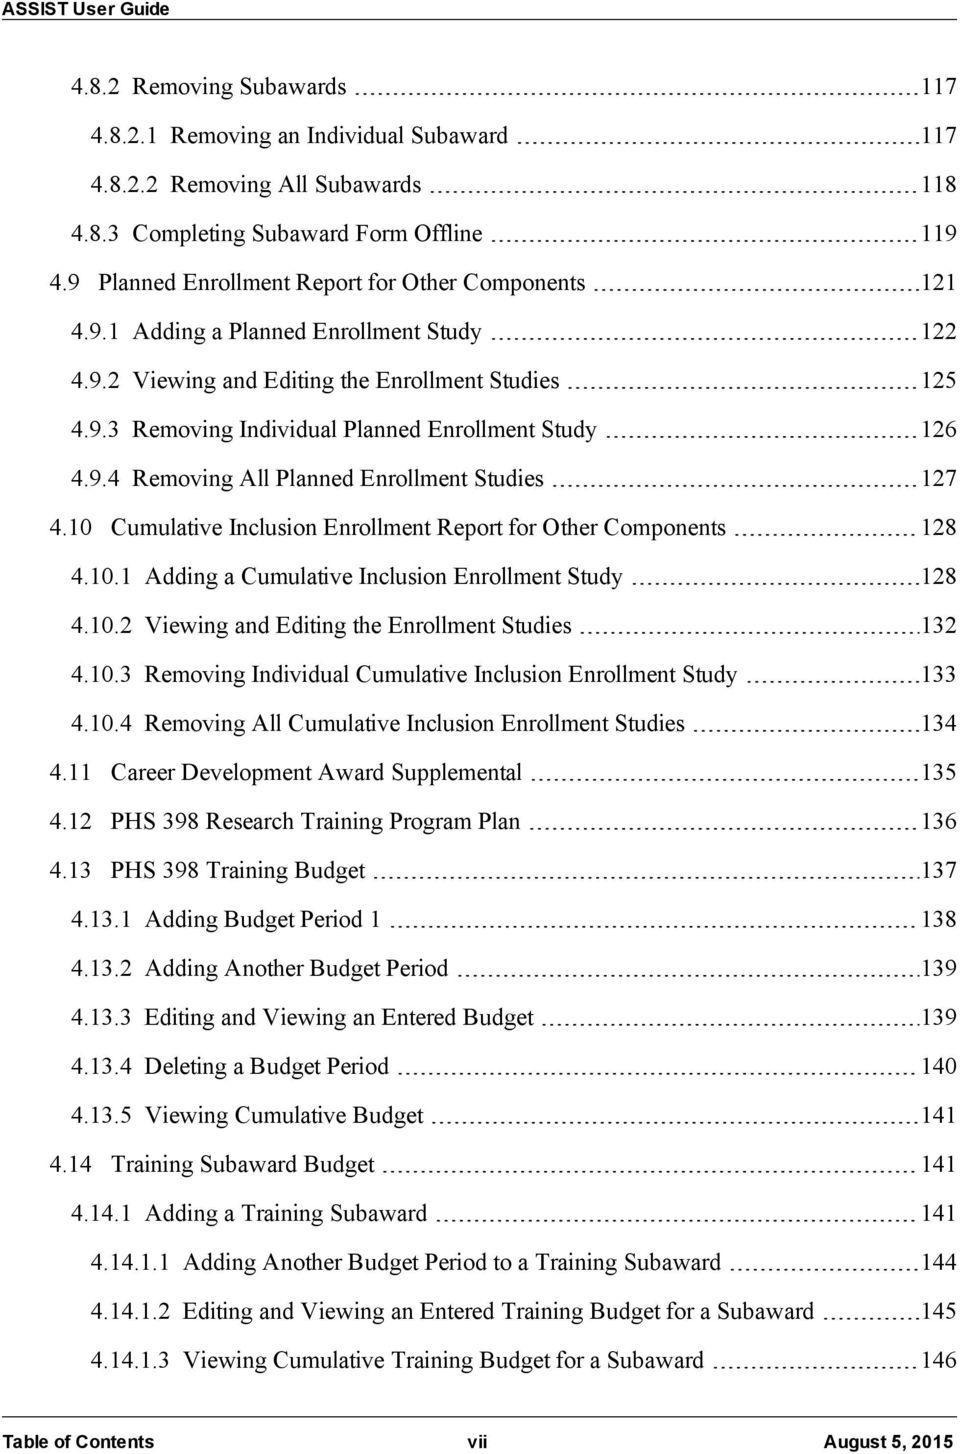 9.4 Removing All Planned Enrollment Studies 127 4.10 Cumulative Inclusion Enrollment Report for Other Components 128 4.10.1 Adding a Cumulative Inclusion Enrollment Study 128 4.10.2 Viewing and Editing the Enrollment Studies 132 4.